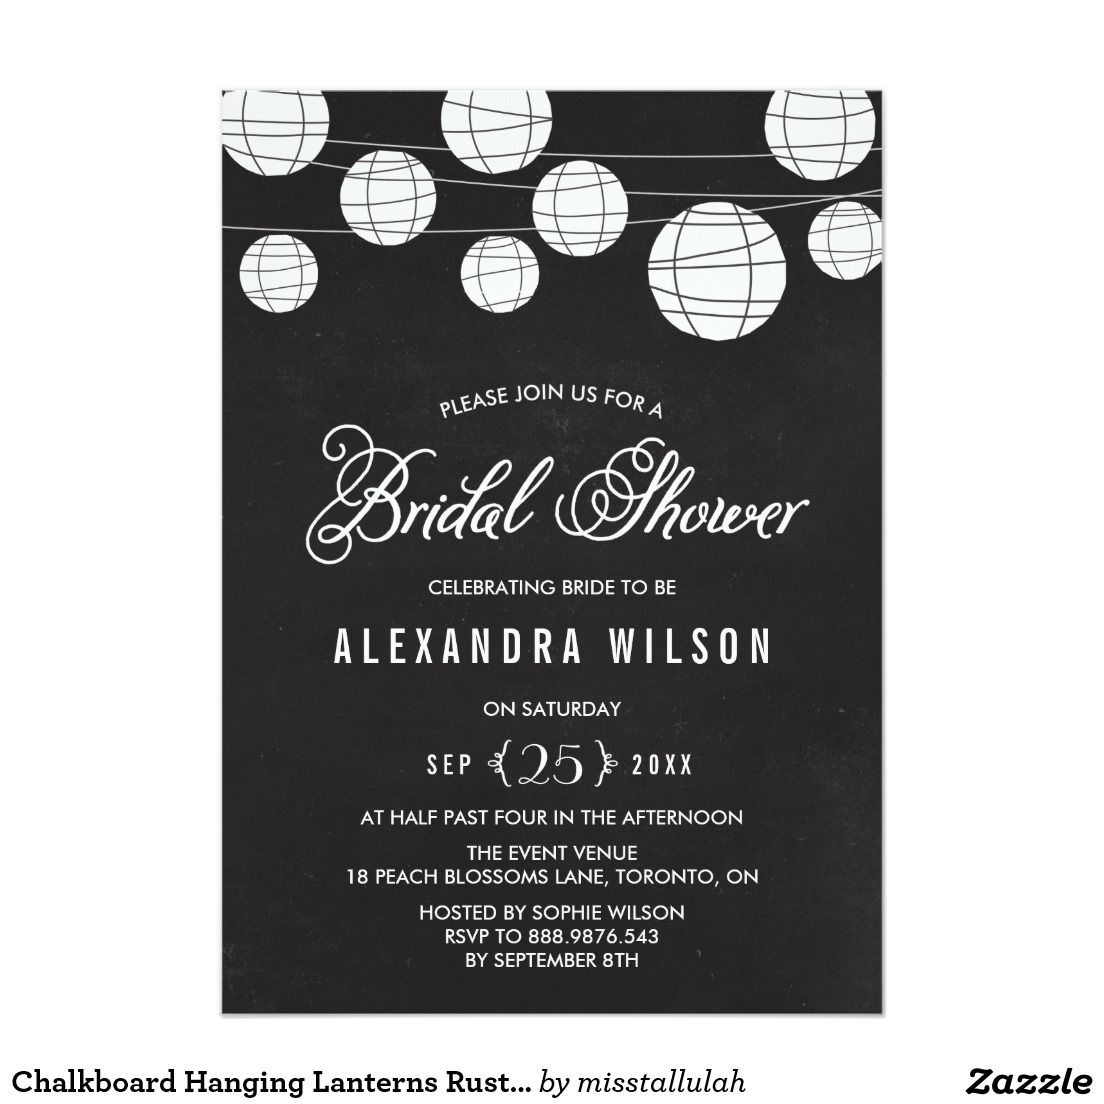 Chalkboard Hanging Lanterns Rustic Bridal Shower Invitation ...